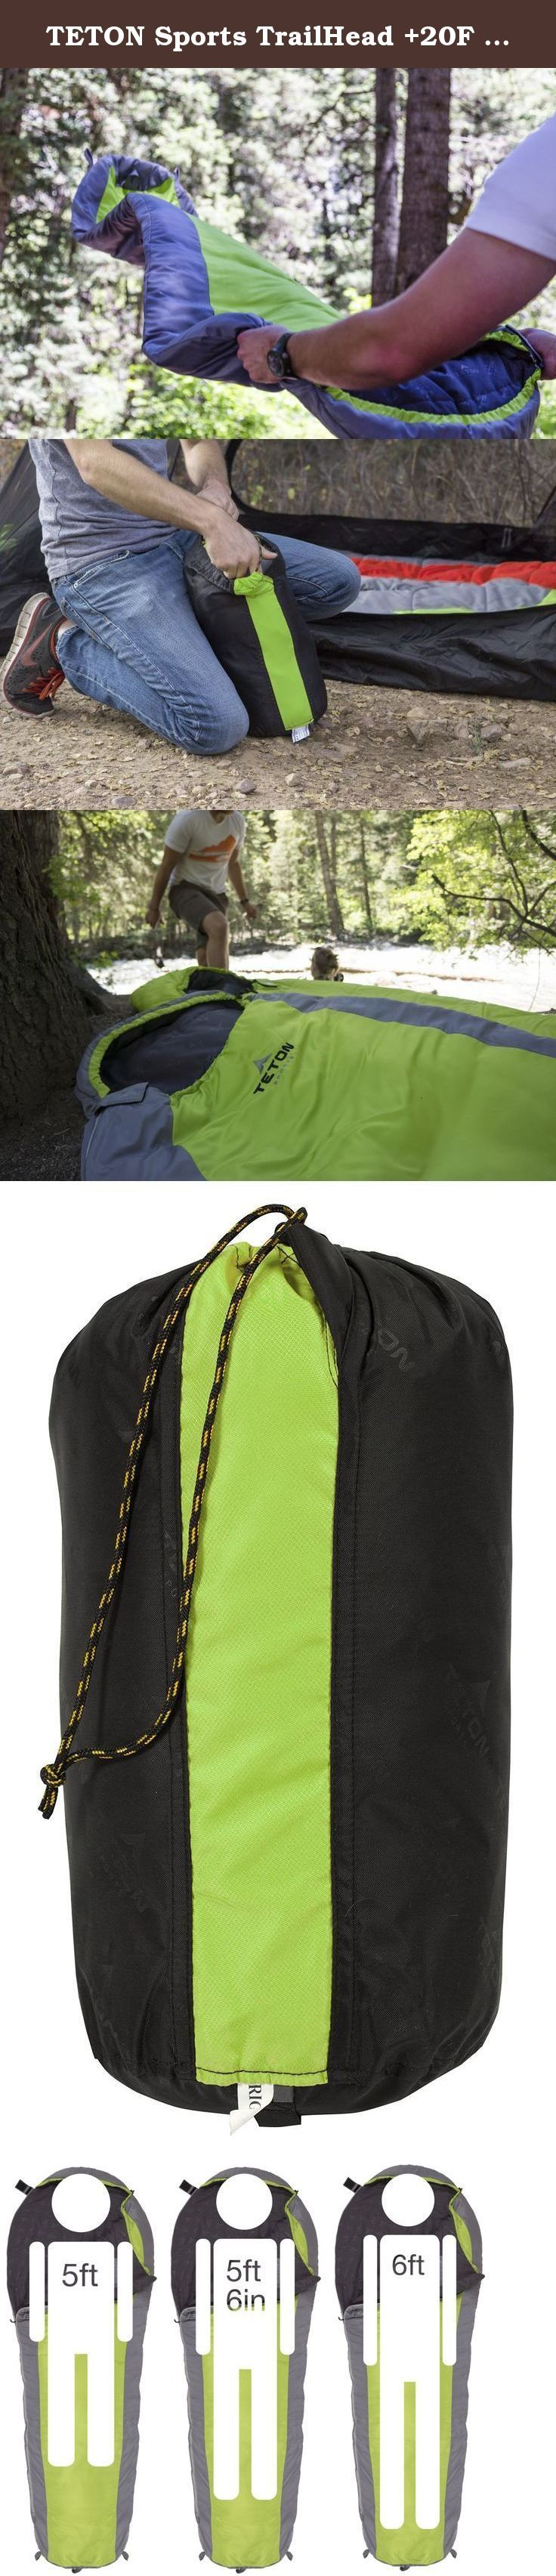 TETON Sports TrailHead +20F Ultralight Sleeping Bag Perfect for Backpacking, Hiking, and Camping; Green/Grey. Finally, a mummy bag designed for comfort and weight reduction. Longer and wider than most mummy bags, the TETON Sports TrailHead +20°F has a soft, breathable liner and an extended foot box with room for toes. Unzip from top or bottom with both interior and exterior zipper pulls so when the mummy hood is cinched, you can still close bag all the way. Safety Velcro tab to make sure…